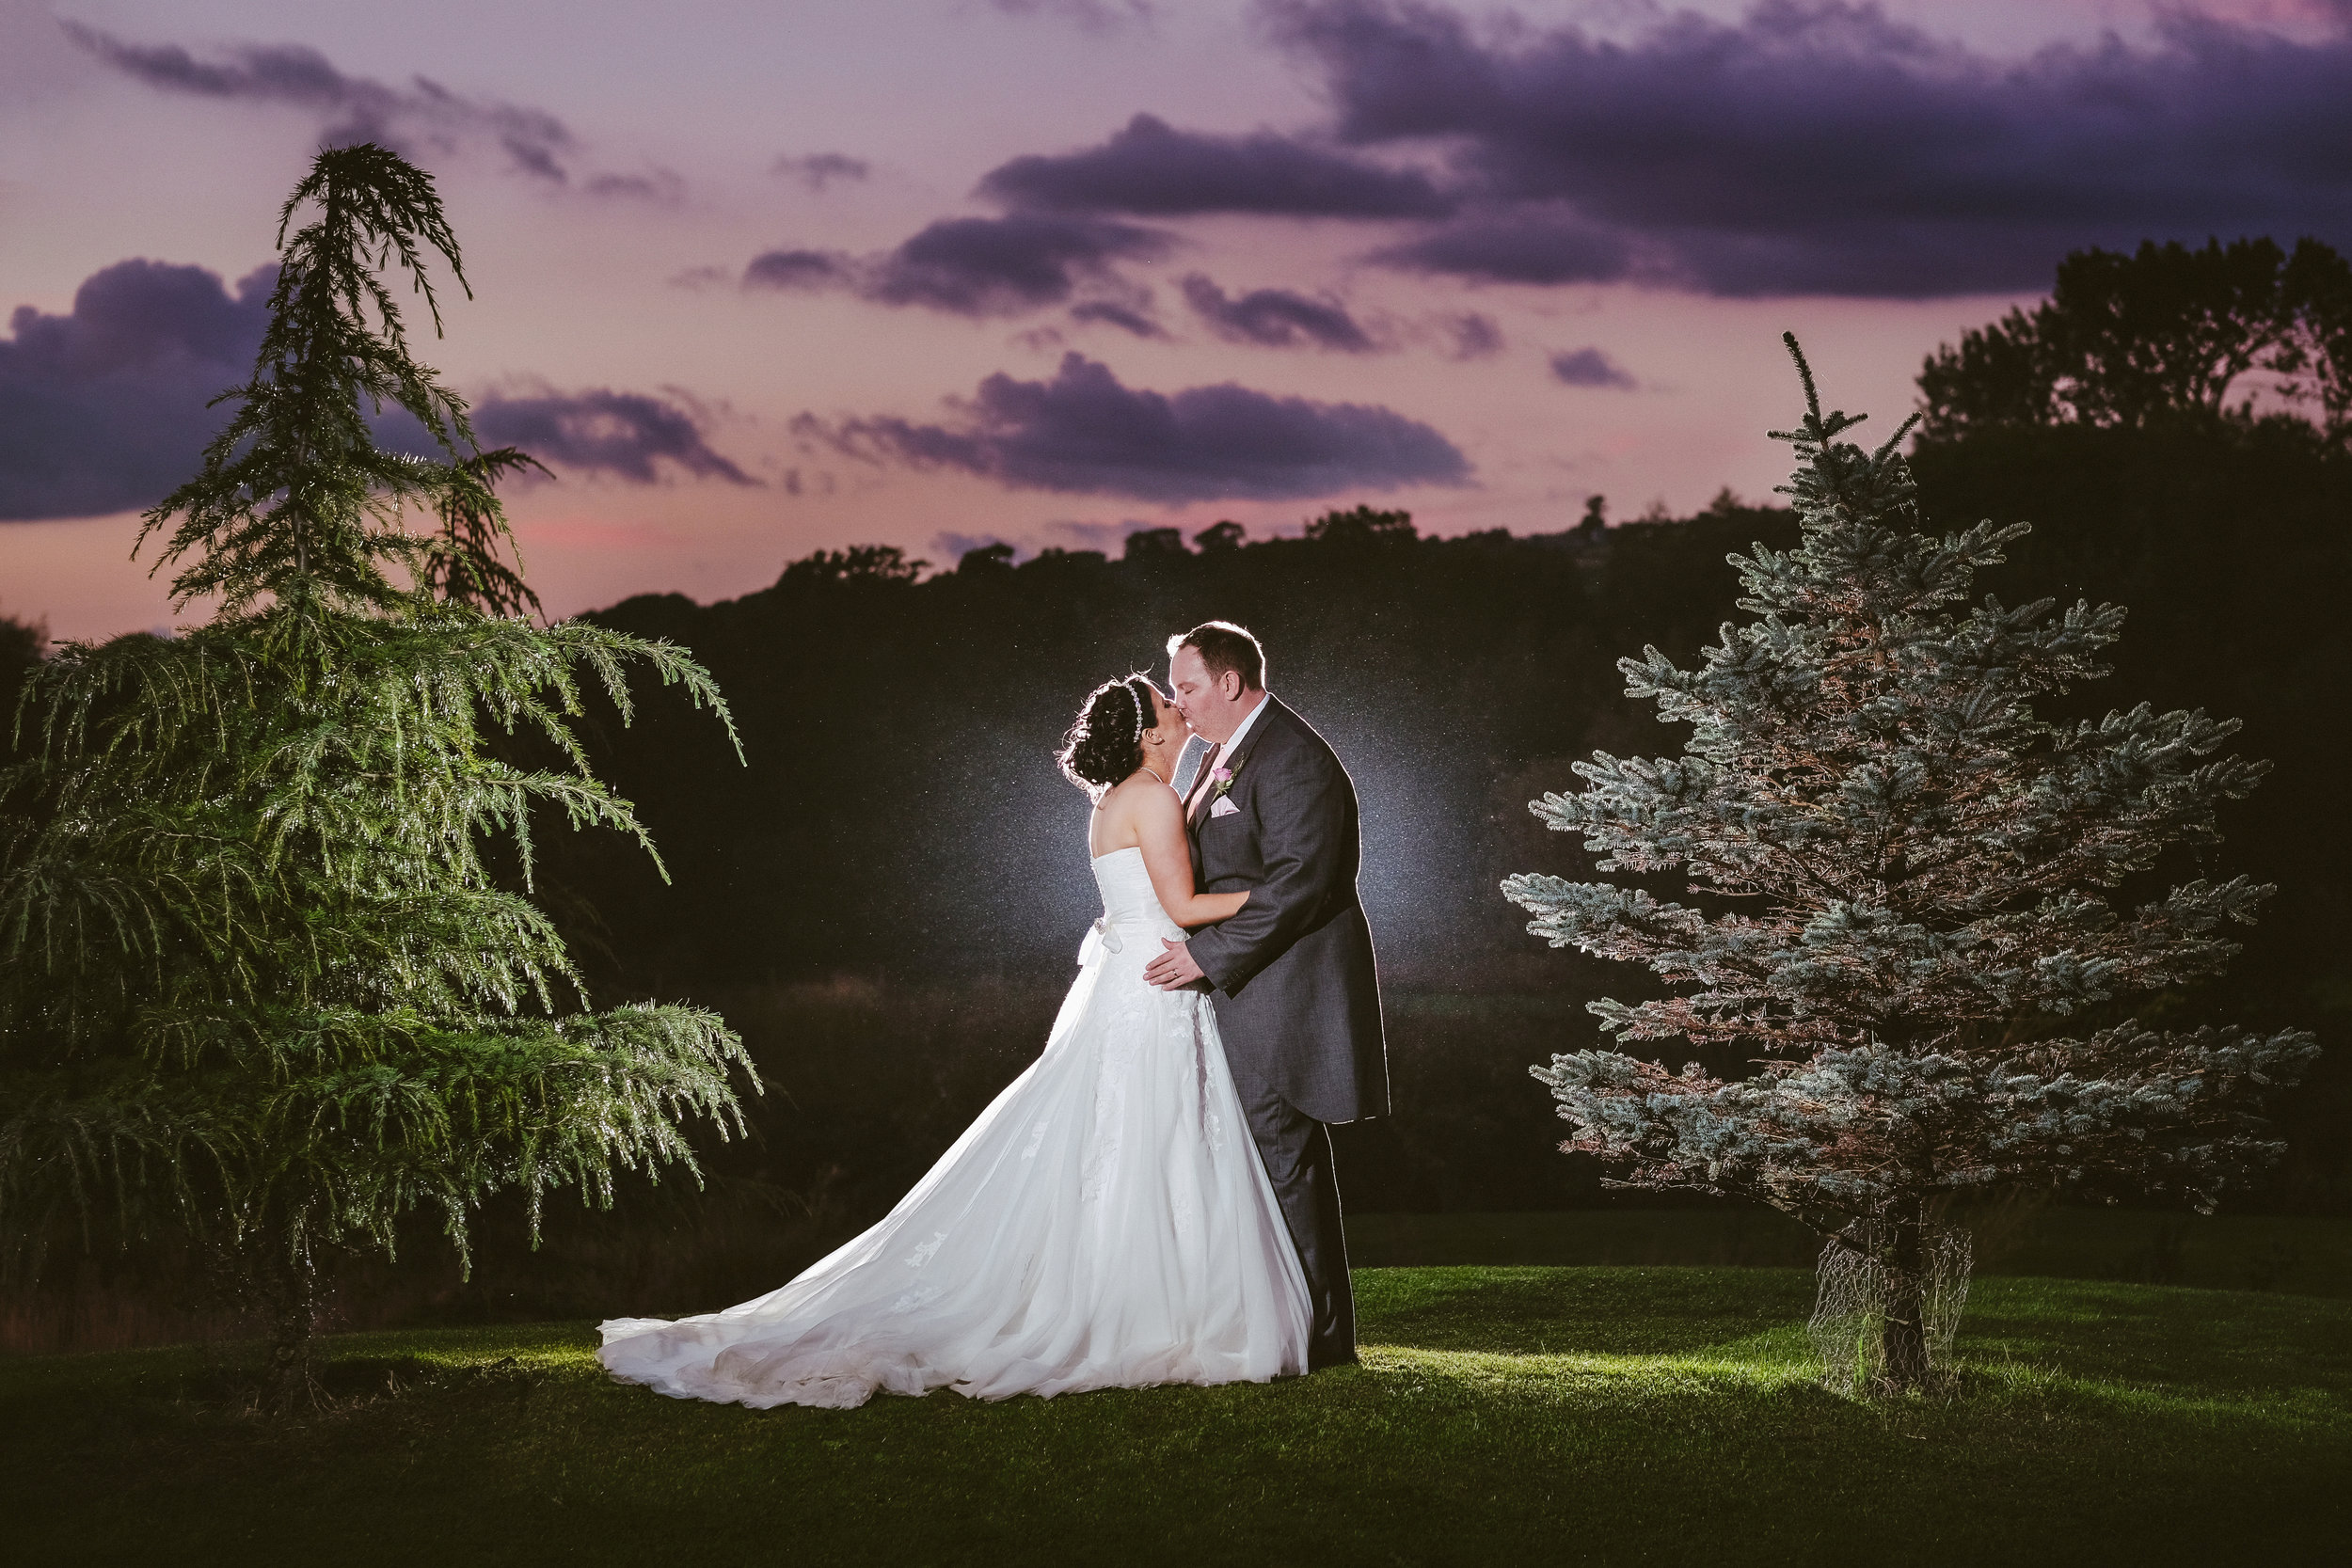 Get rid of nerves and look great in your wedding photographs